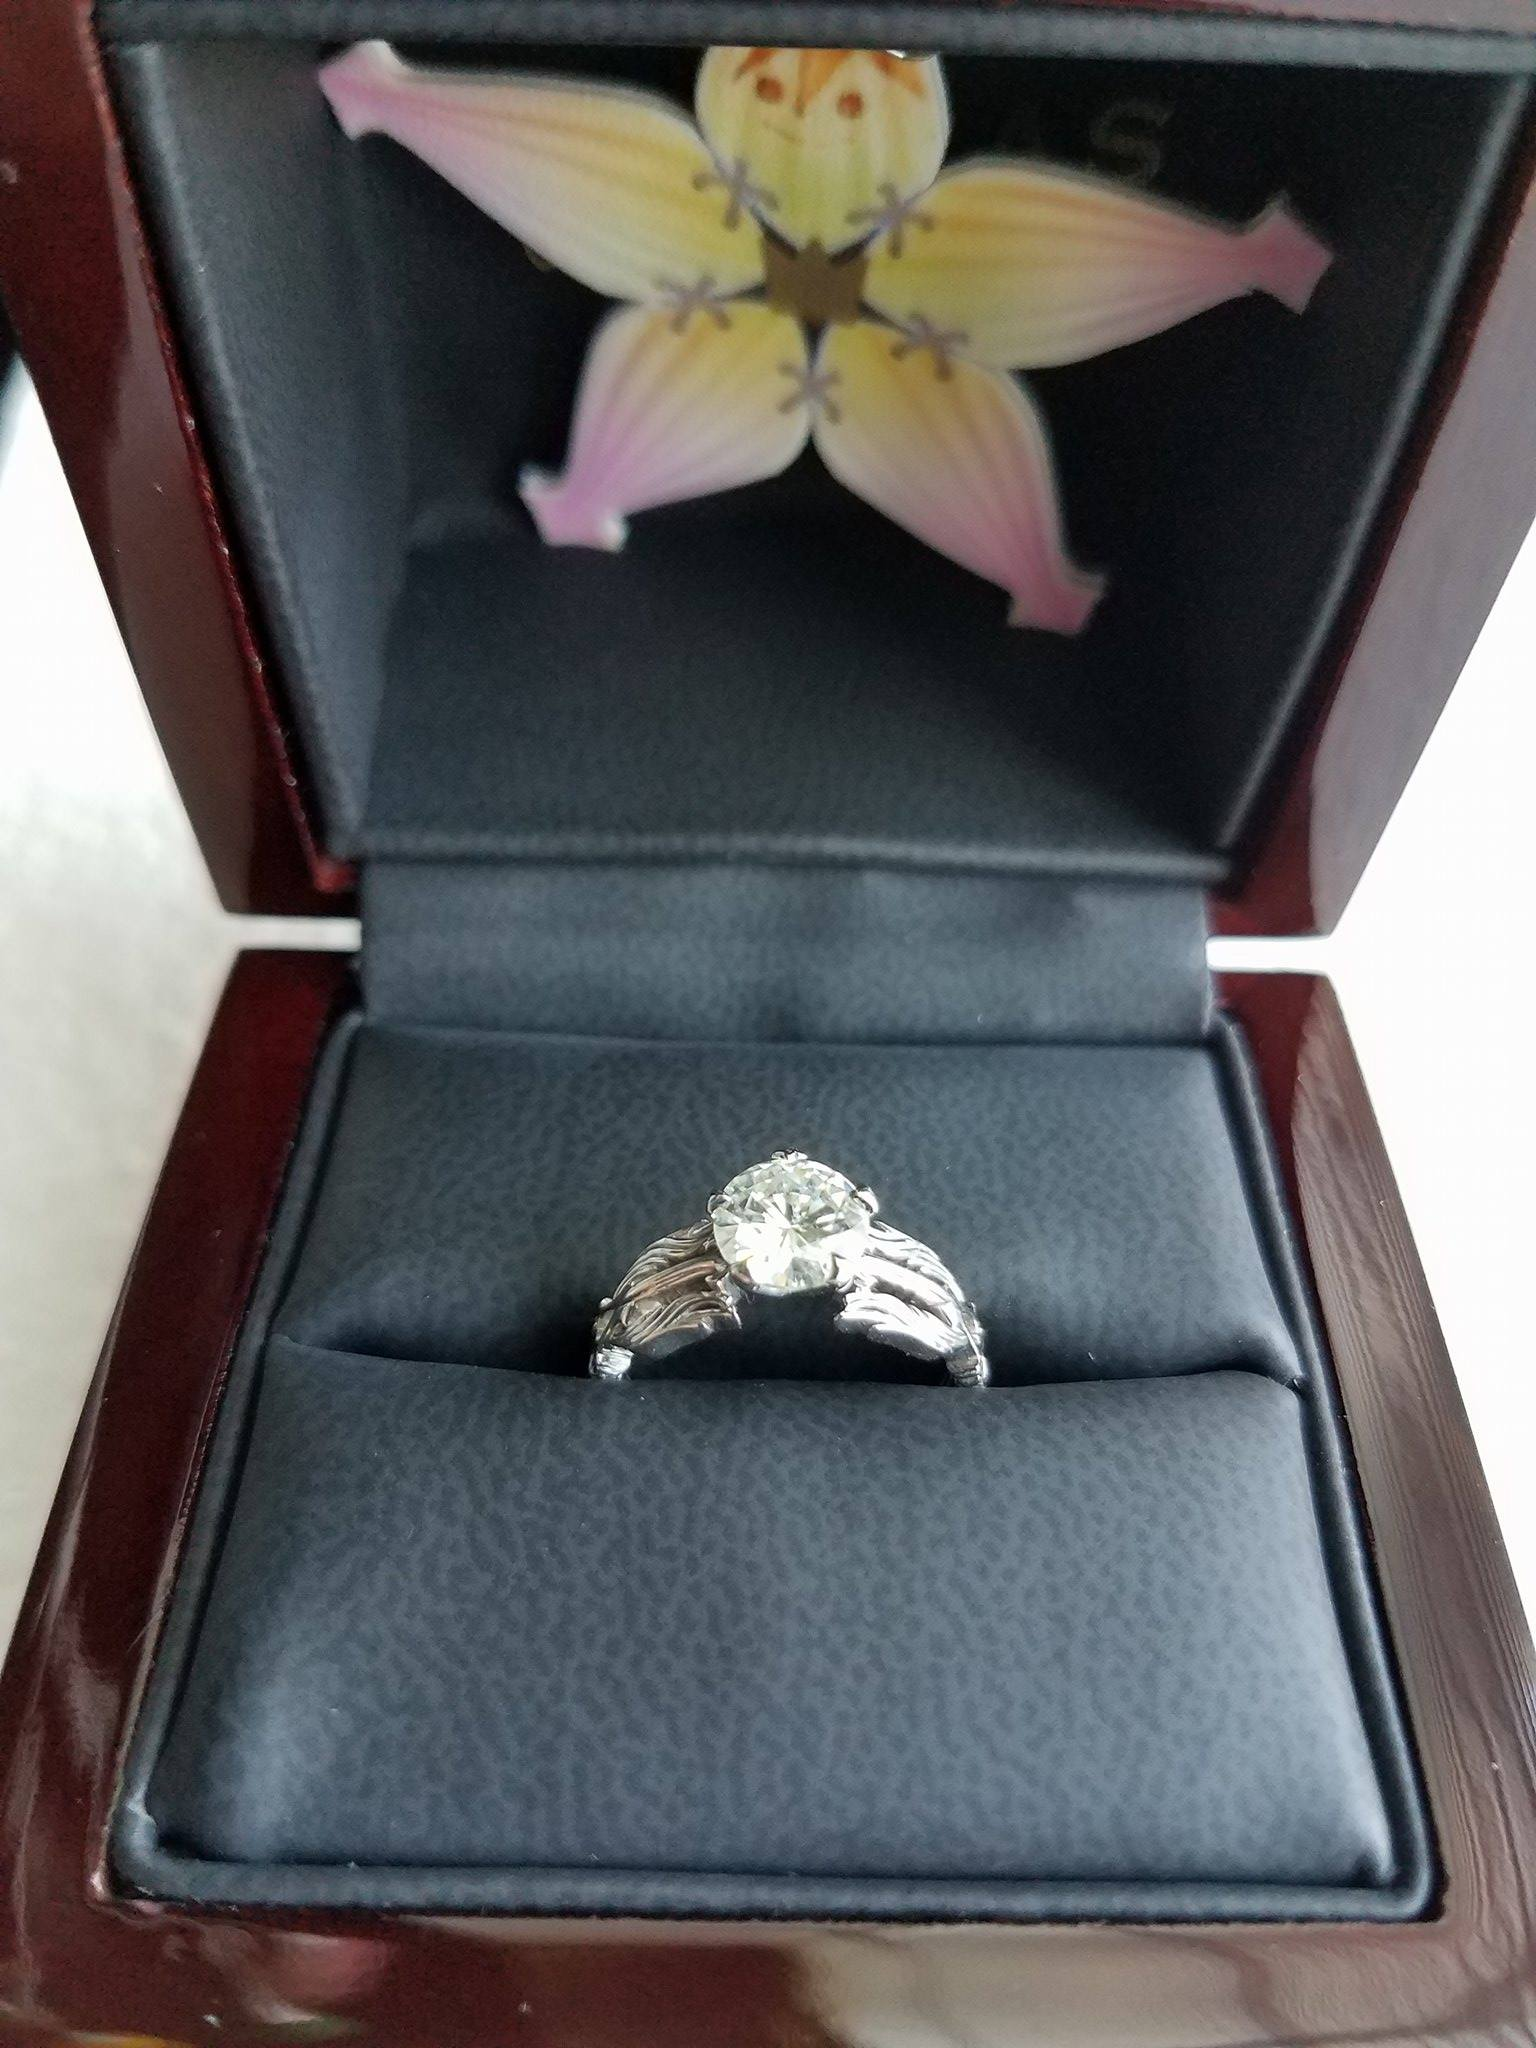 Kingdom Hearts Oathkeeper and Wayfinder solitaire engagement ring by Takayas Custom Jewelry, in ring box